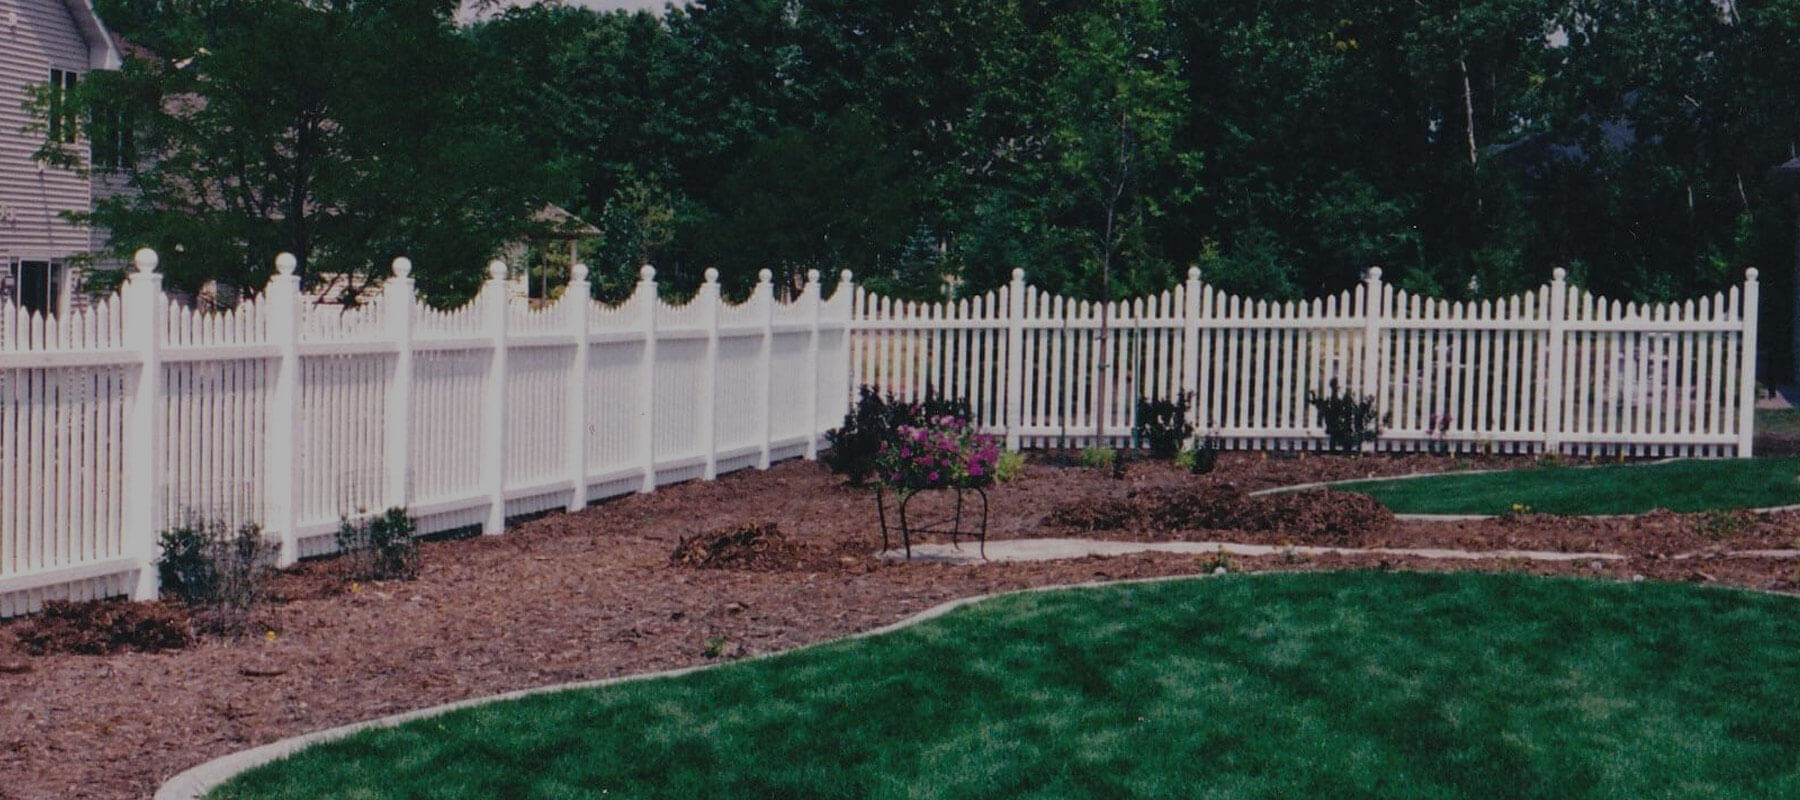 Northern Fence Inc Fox Cities Fence Installation Amp Repair